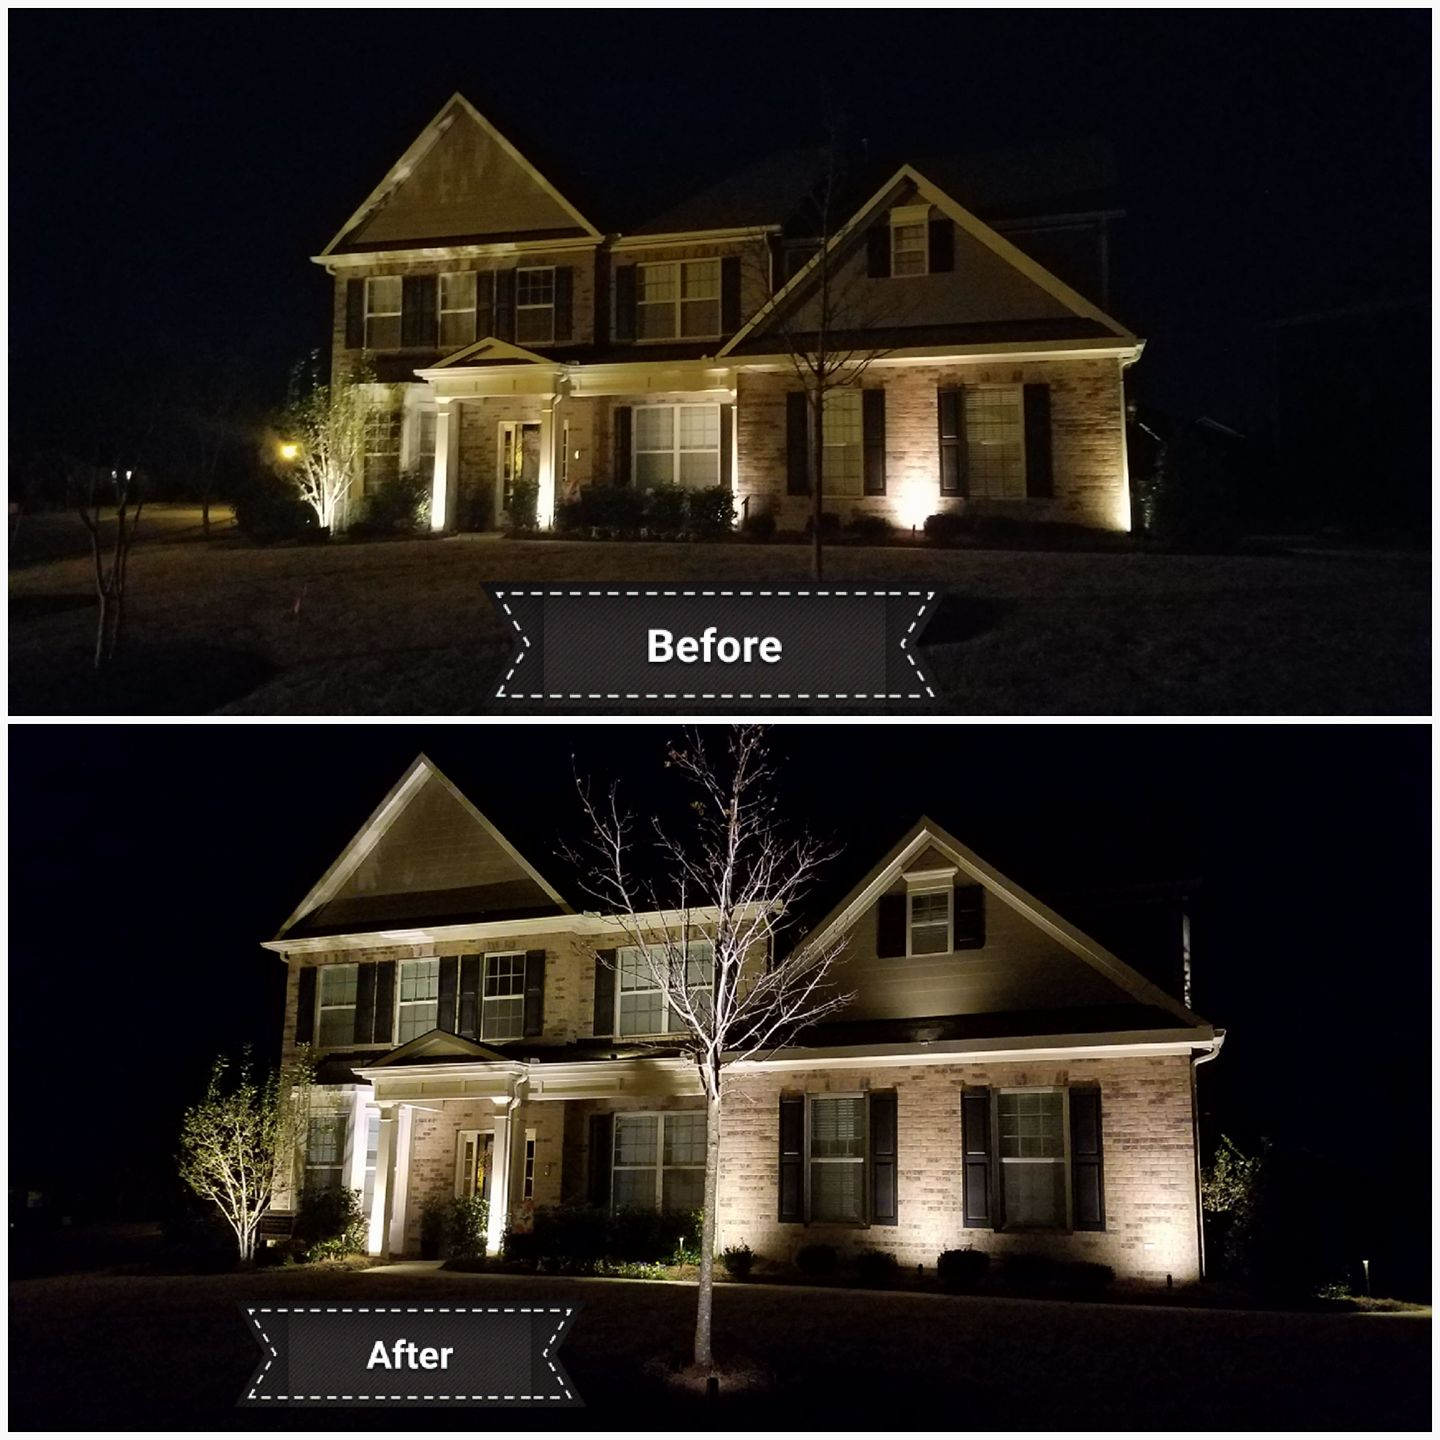 ... we transformed it to LED for an 80% savings on electrical use. The resulting lighting color and evenness of the spread is much more pleasing to the eye. & Blog | Outdoor Lighting Perspectives